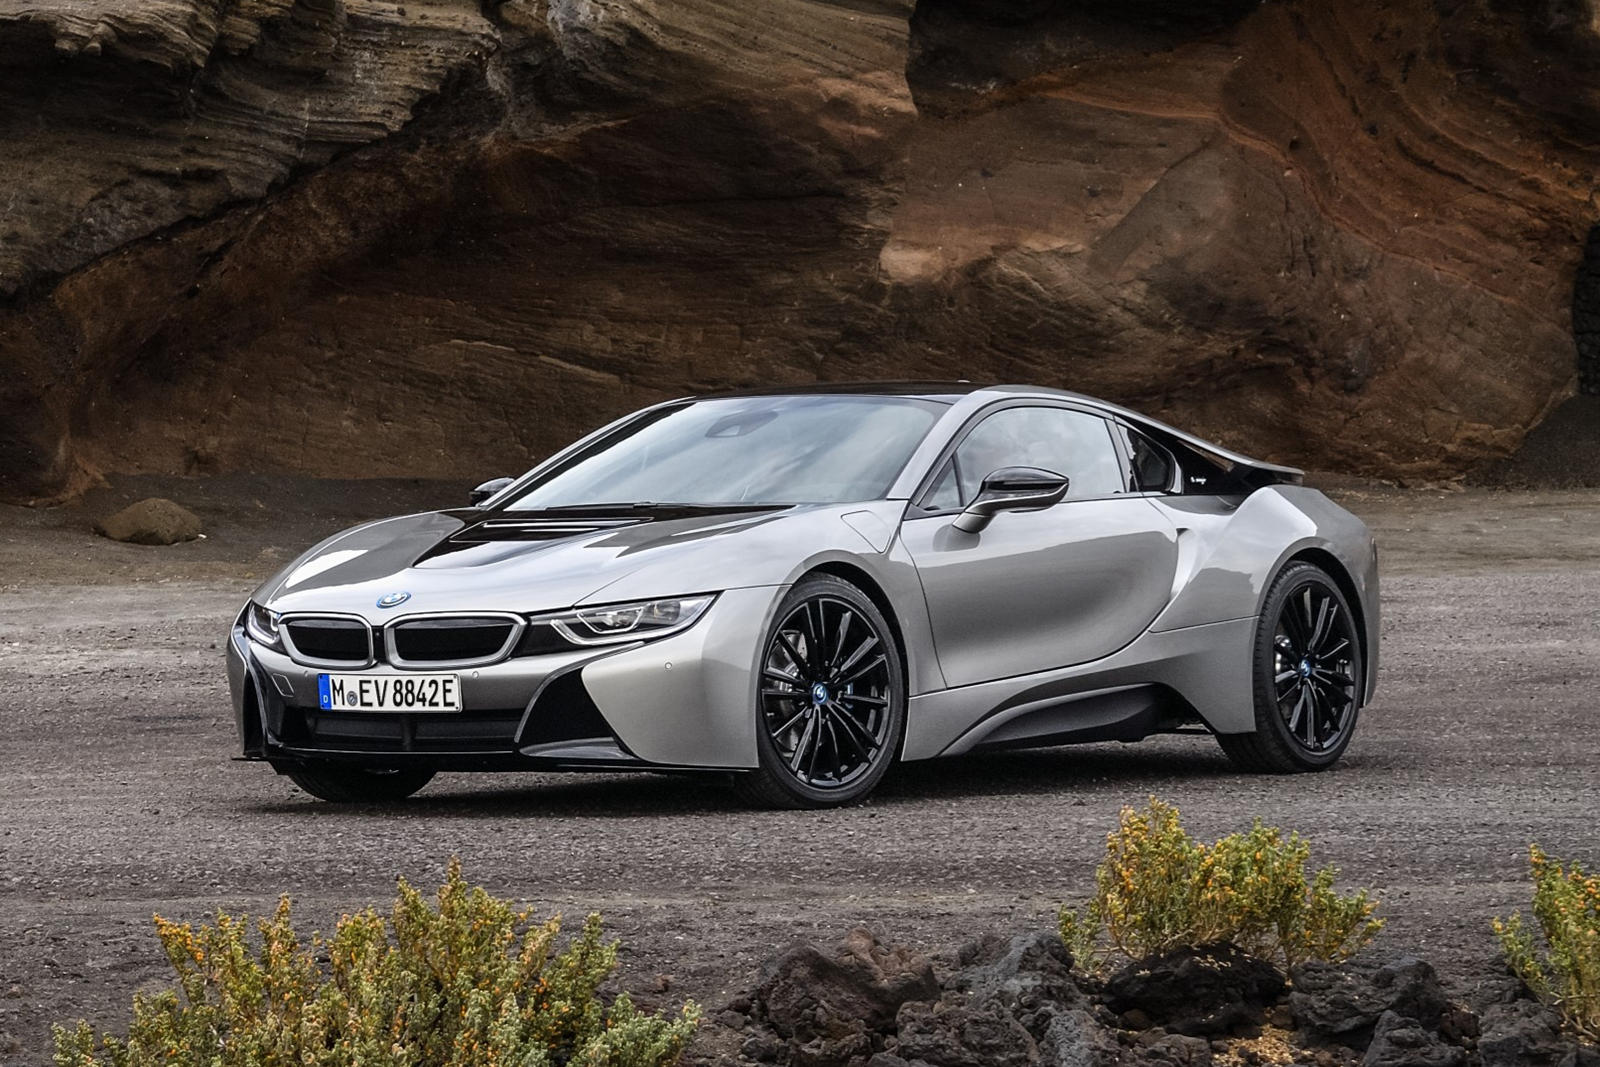 2020 Bmw I8 Coupe Review Trims Specs Price New Interior Features Exterior Design And Specifications Carbuzz